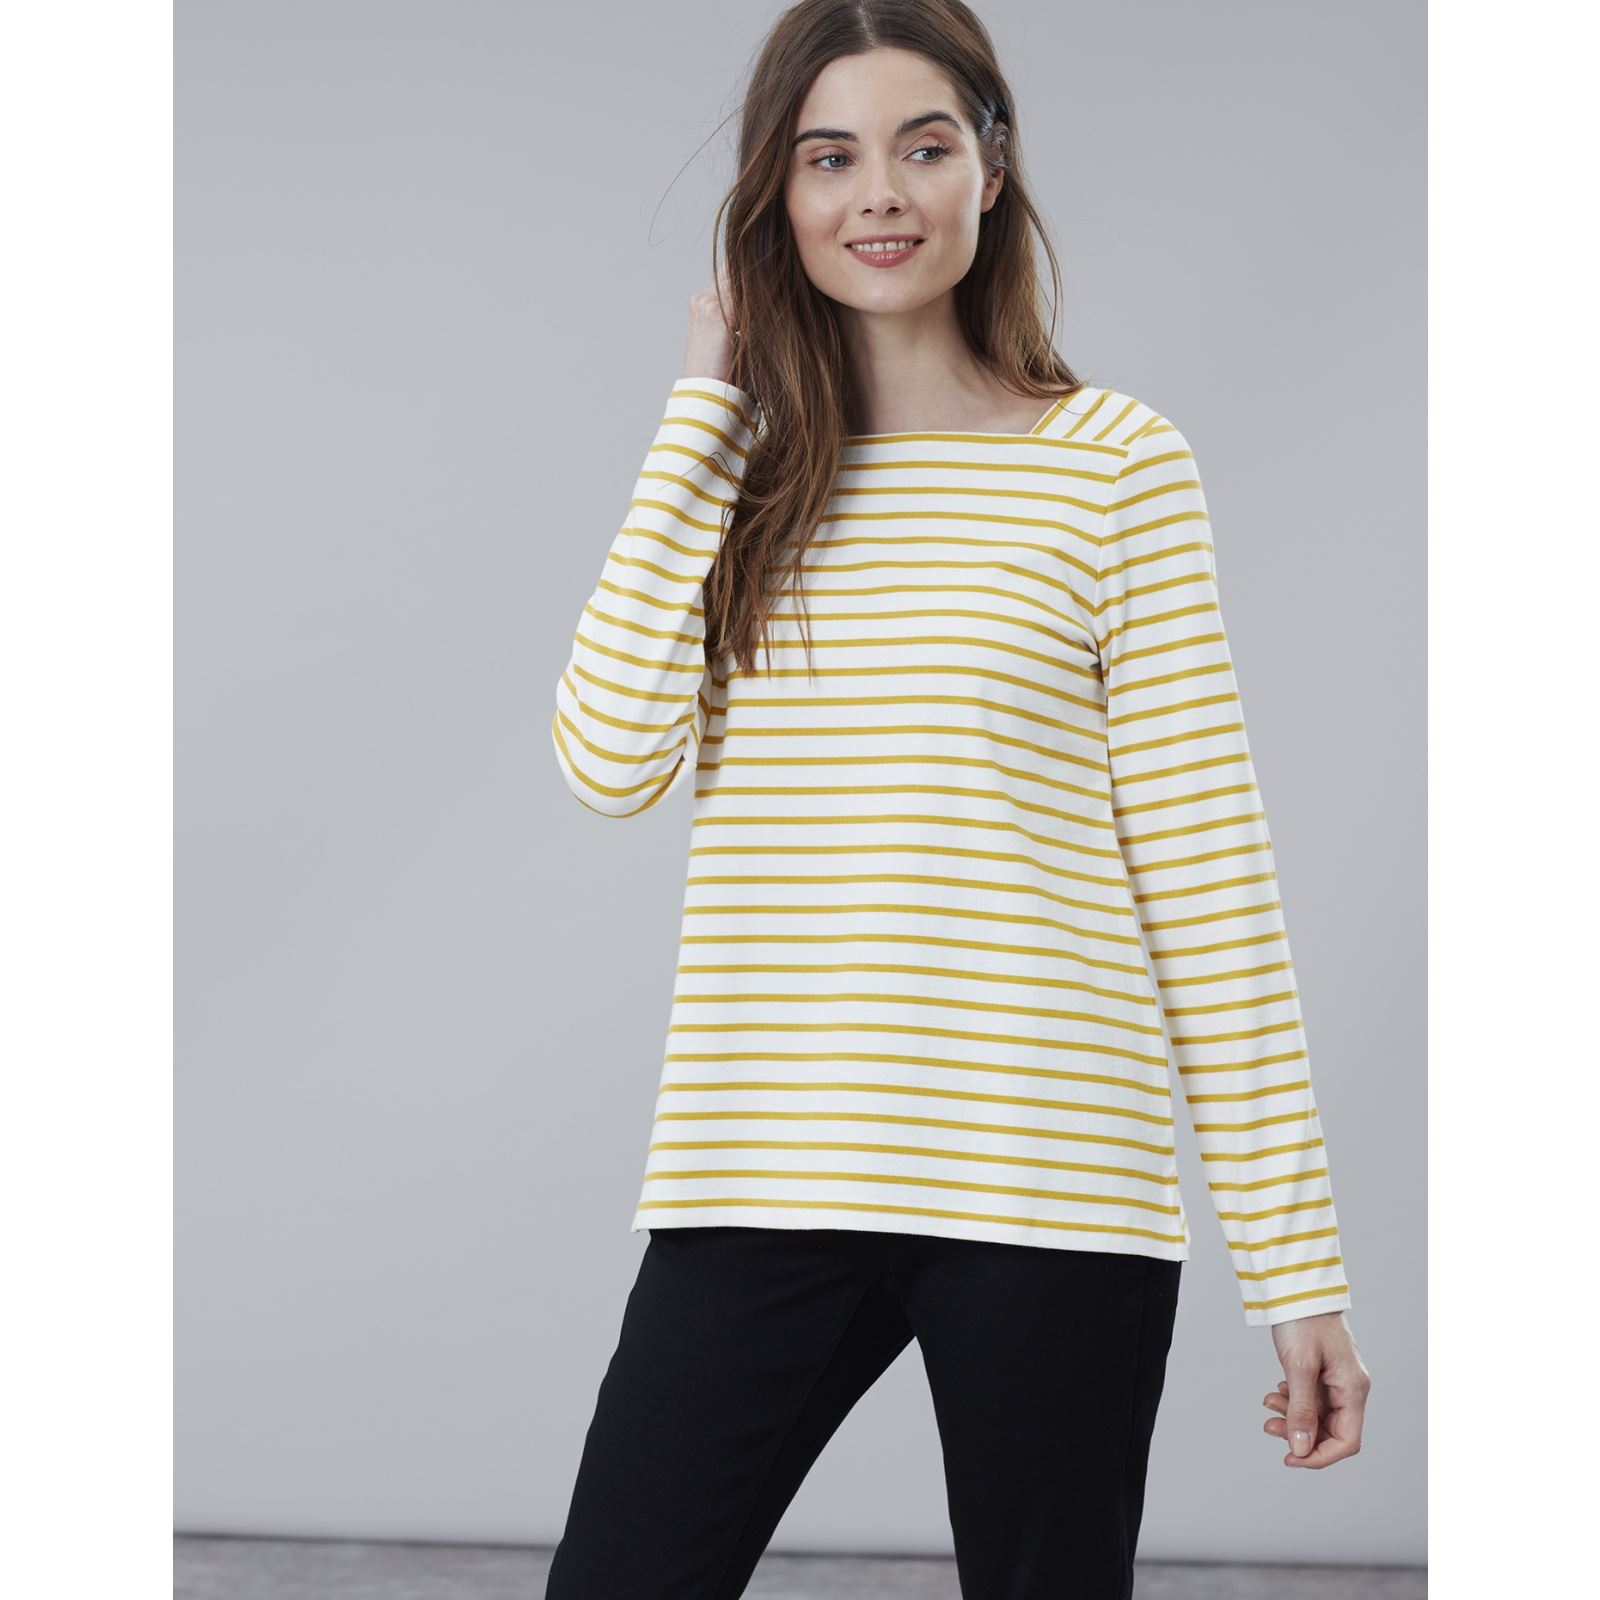 Joules-Matilde-Ladies-Square-Neck-Jersey-Top-ALL-COLOURS thumbnail 7